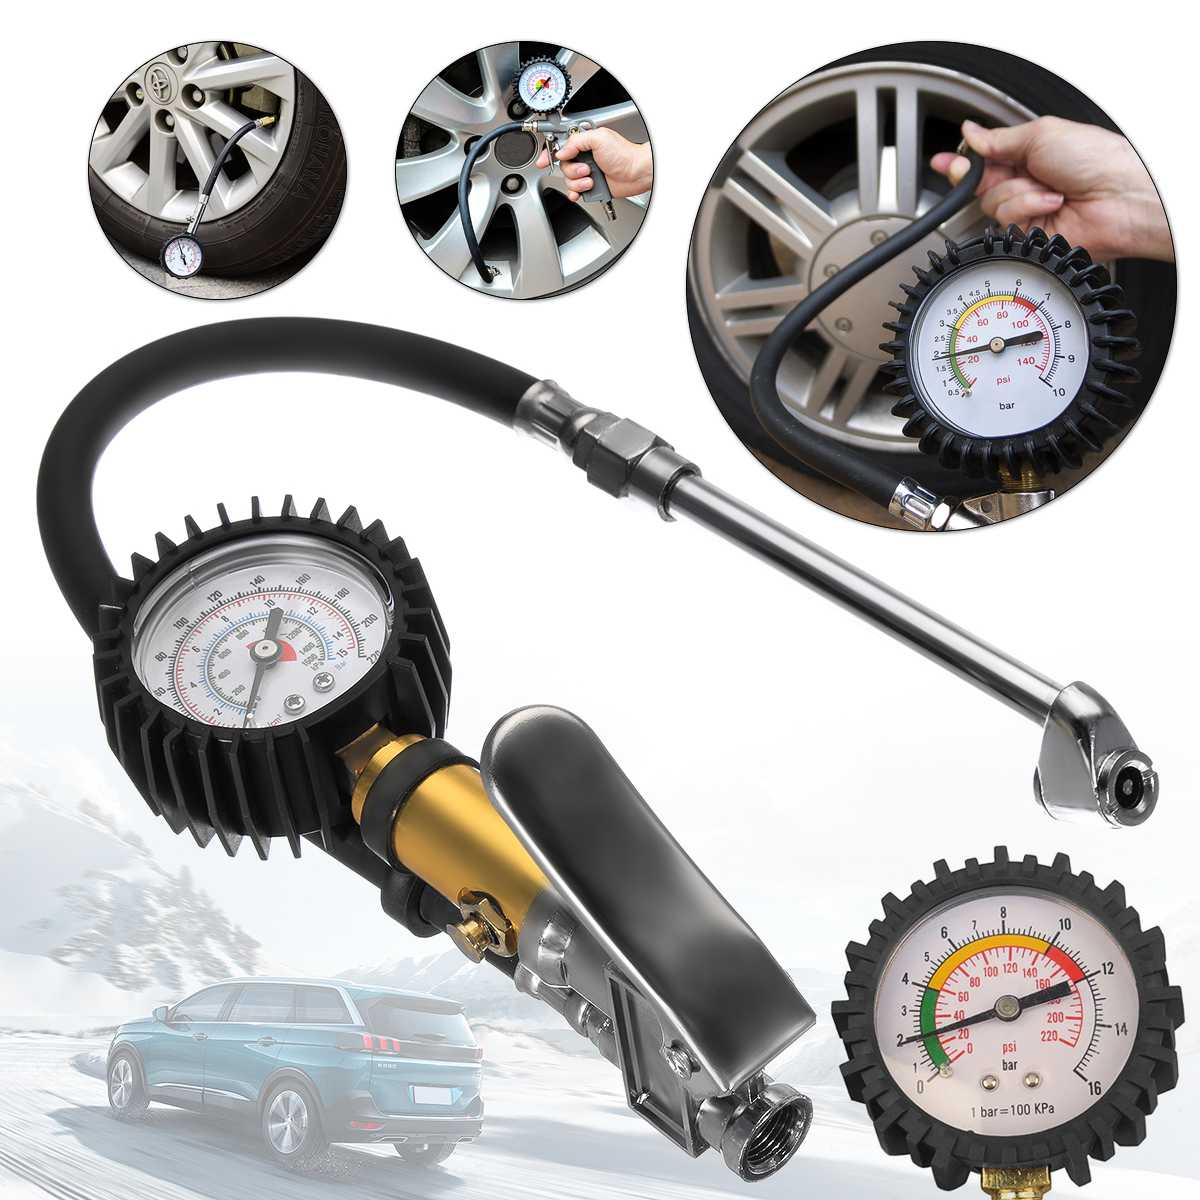 Tyre Air Inflator Dial Pressure Meter Gauge Air Line Tyre Pump Pressure Dual Air ChuckTester For Car Truck Cycles Dinghies